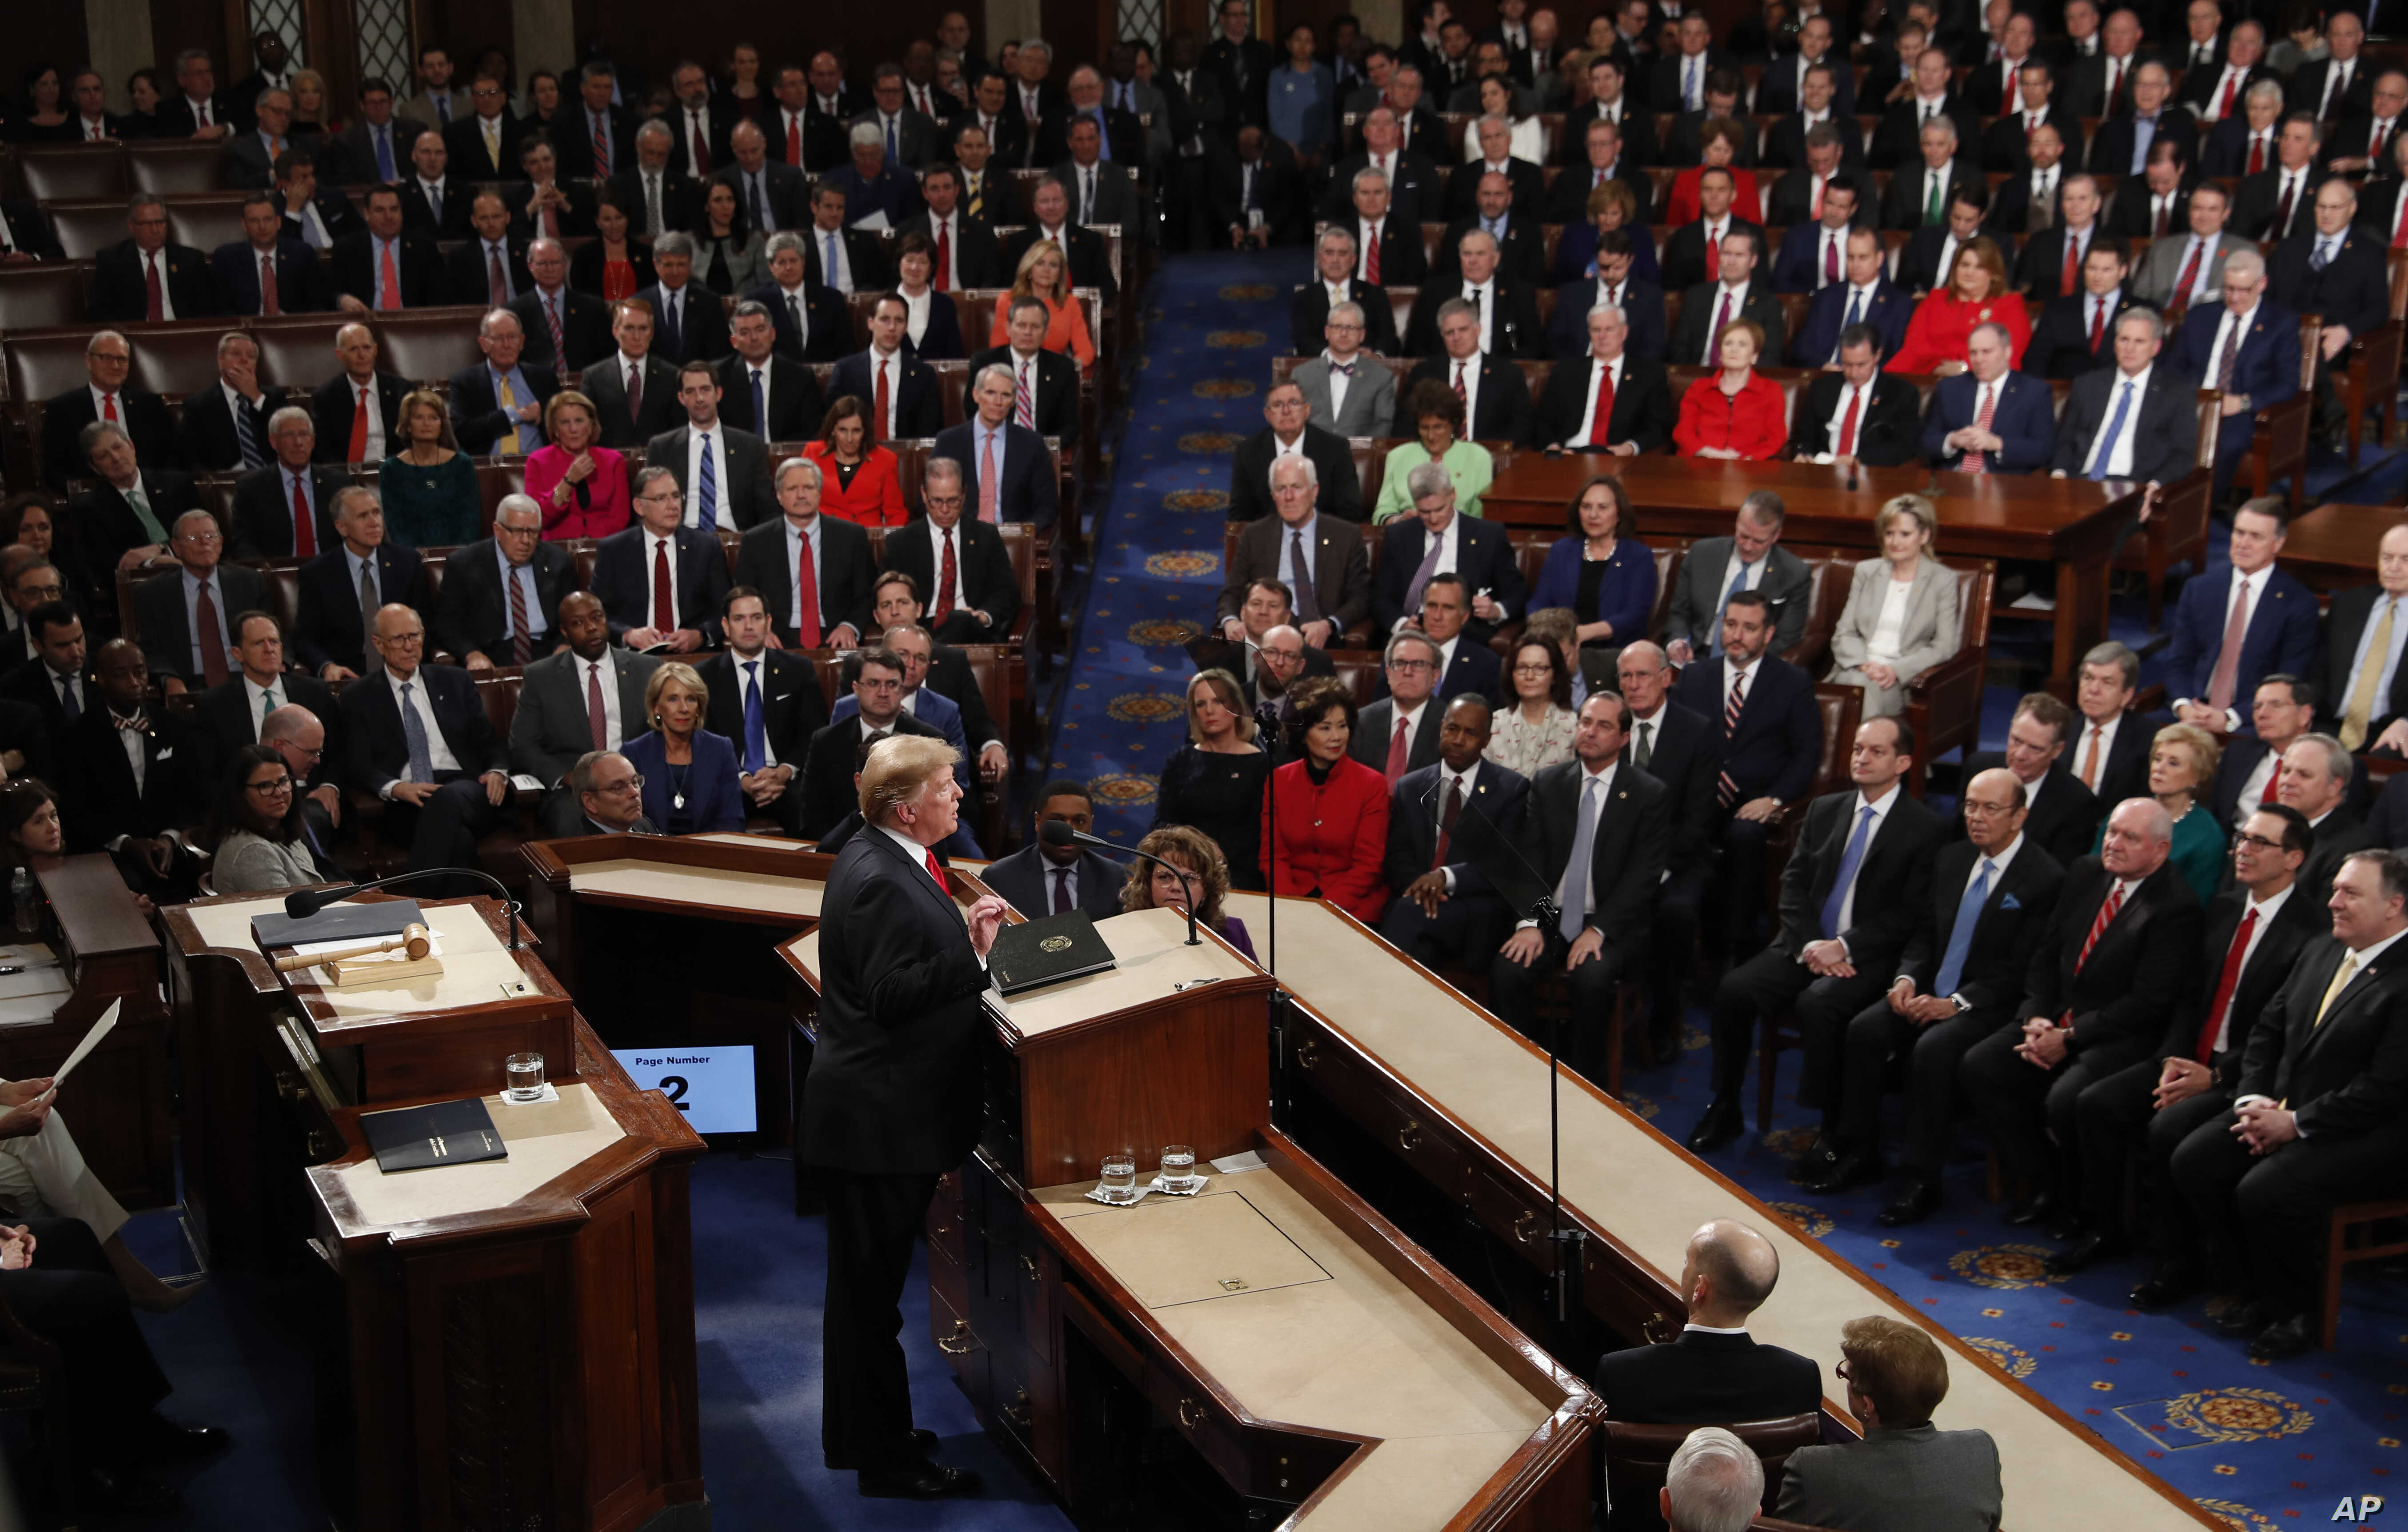 President Donald Trump delivers his State of the Union address to a joint session of Congress on Capitol Hill in Washington,Feb. 5, 2019.